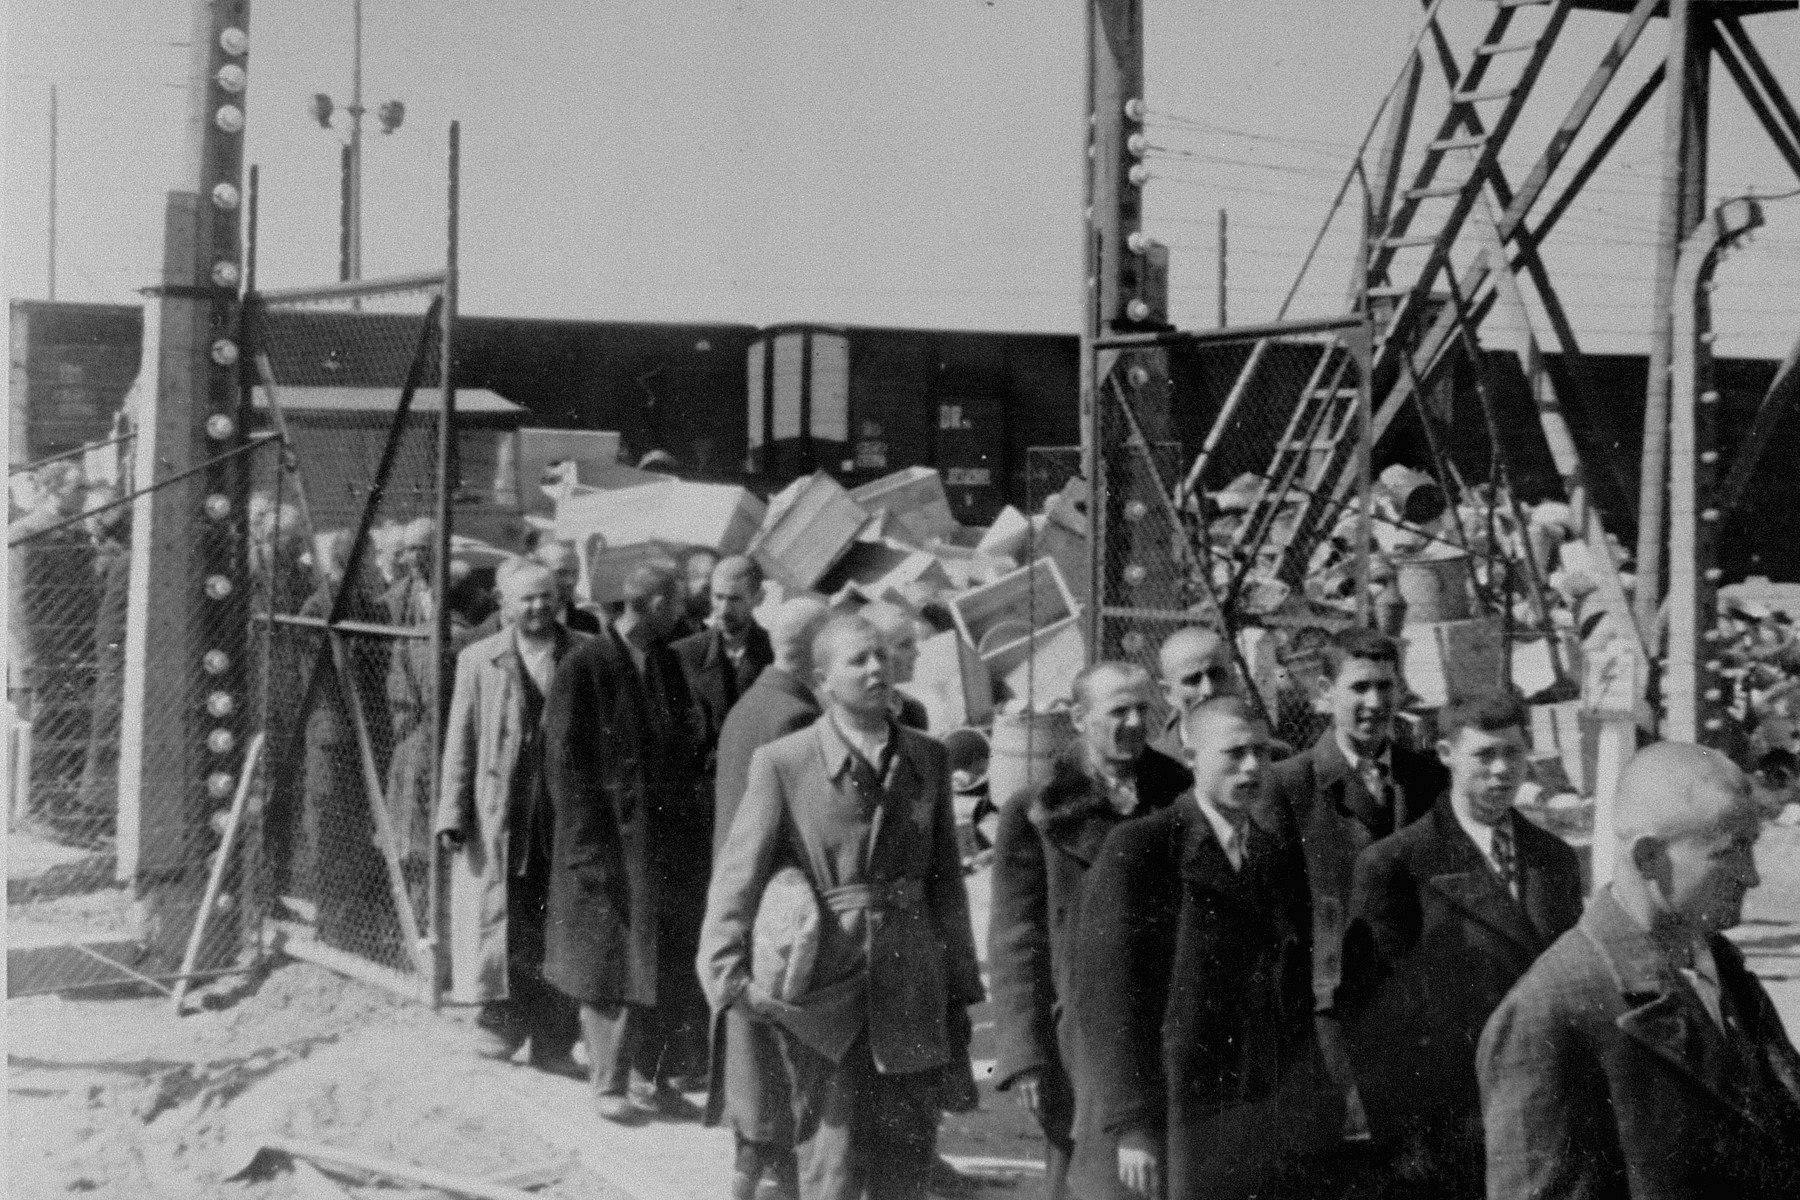 Jews from Subcarpathian Rus who have been selected for forced labor at Auschwitz-Birkenau, are marched to another section of the camp.  Behind them are huge piles of personal property confiscated from the deportees.